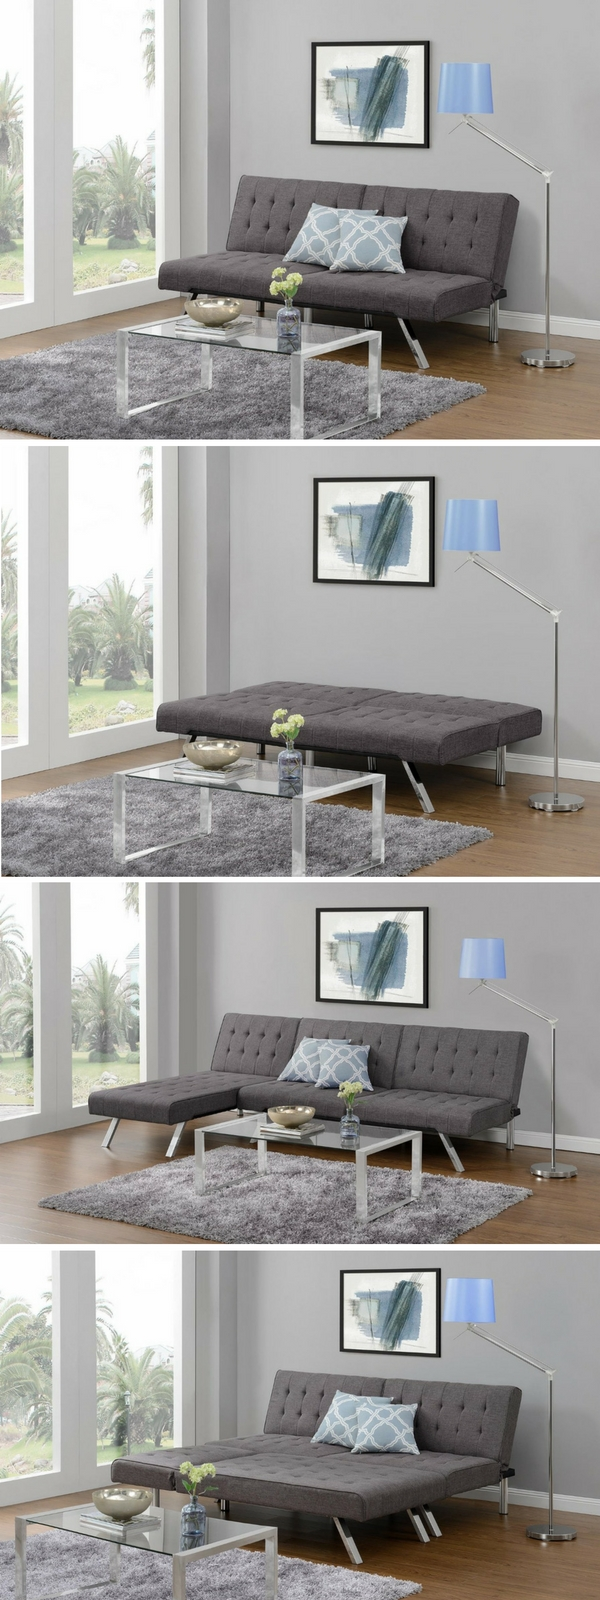 Check out the DHP Emily Convertible Linen Futon - one of the top 10 best sleeper sofas